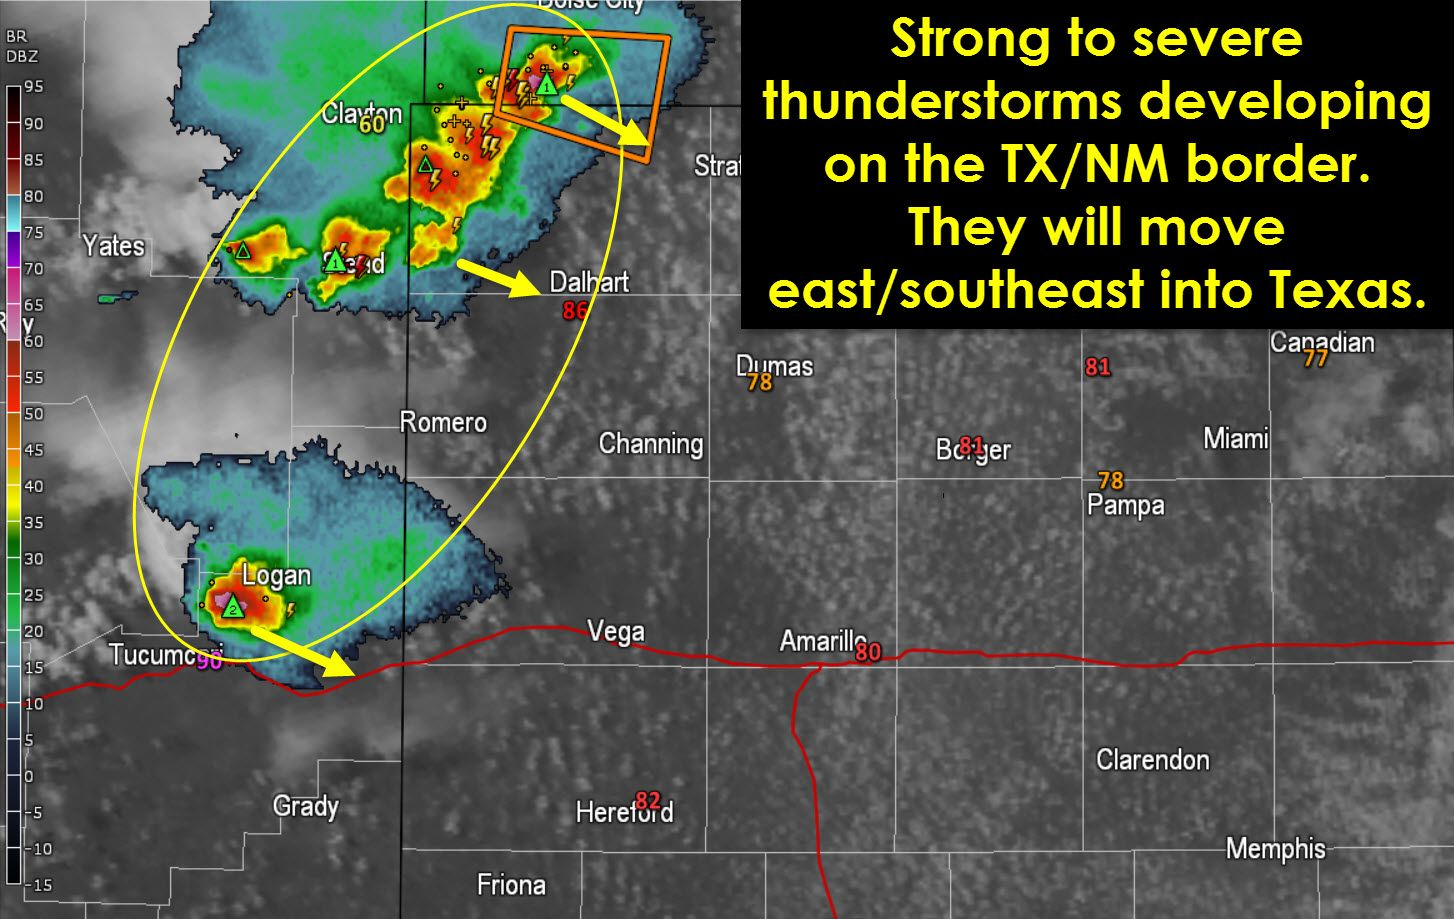 Strong to severe thunderstorms are firing up just after 5 PM on the Texas Panhandle/New Mexico border. These storms will slowly move into Texas with the possibility of damaging winds, hail, and localized flooding. Have a way to receive weather warnings and move to a safe place if a intense storm approaches. Read the whole article at http://texasstormchasers.com/?p=38733 - David Reimer